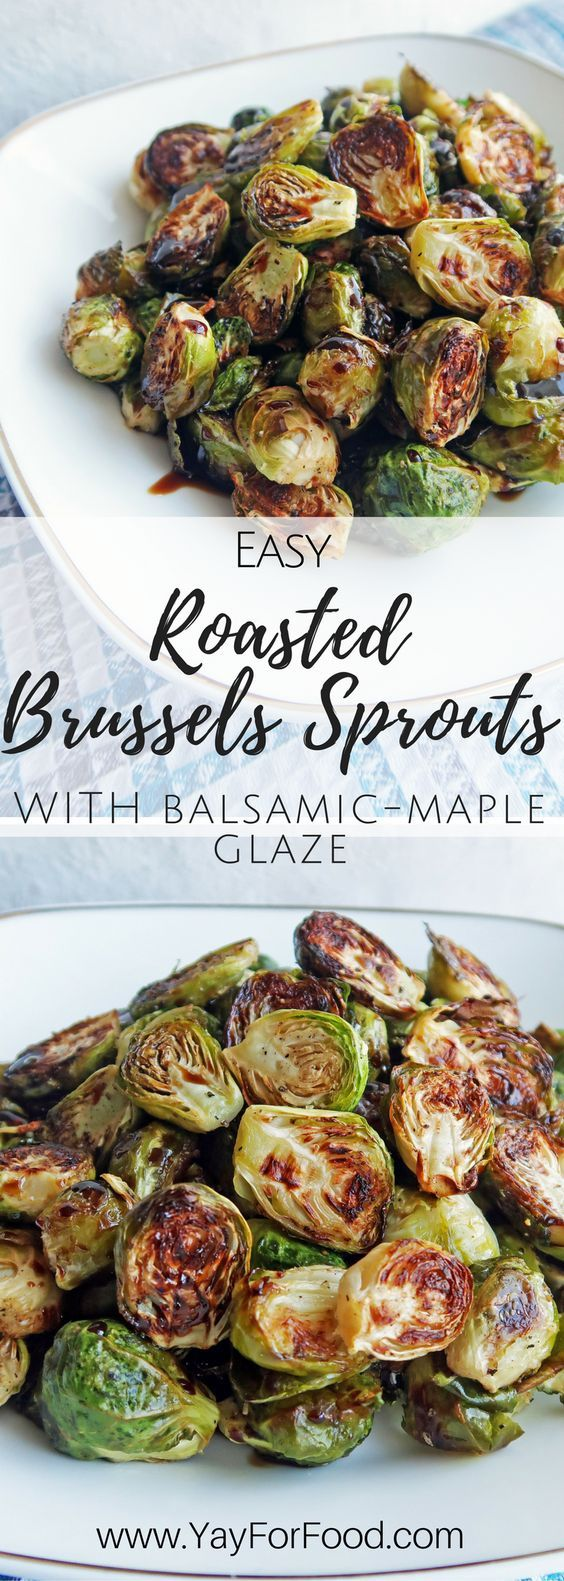 Roasted Brussels Sprouts With Balsamic-Maple Glaze